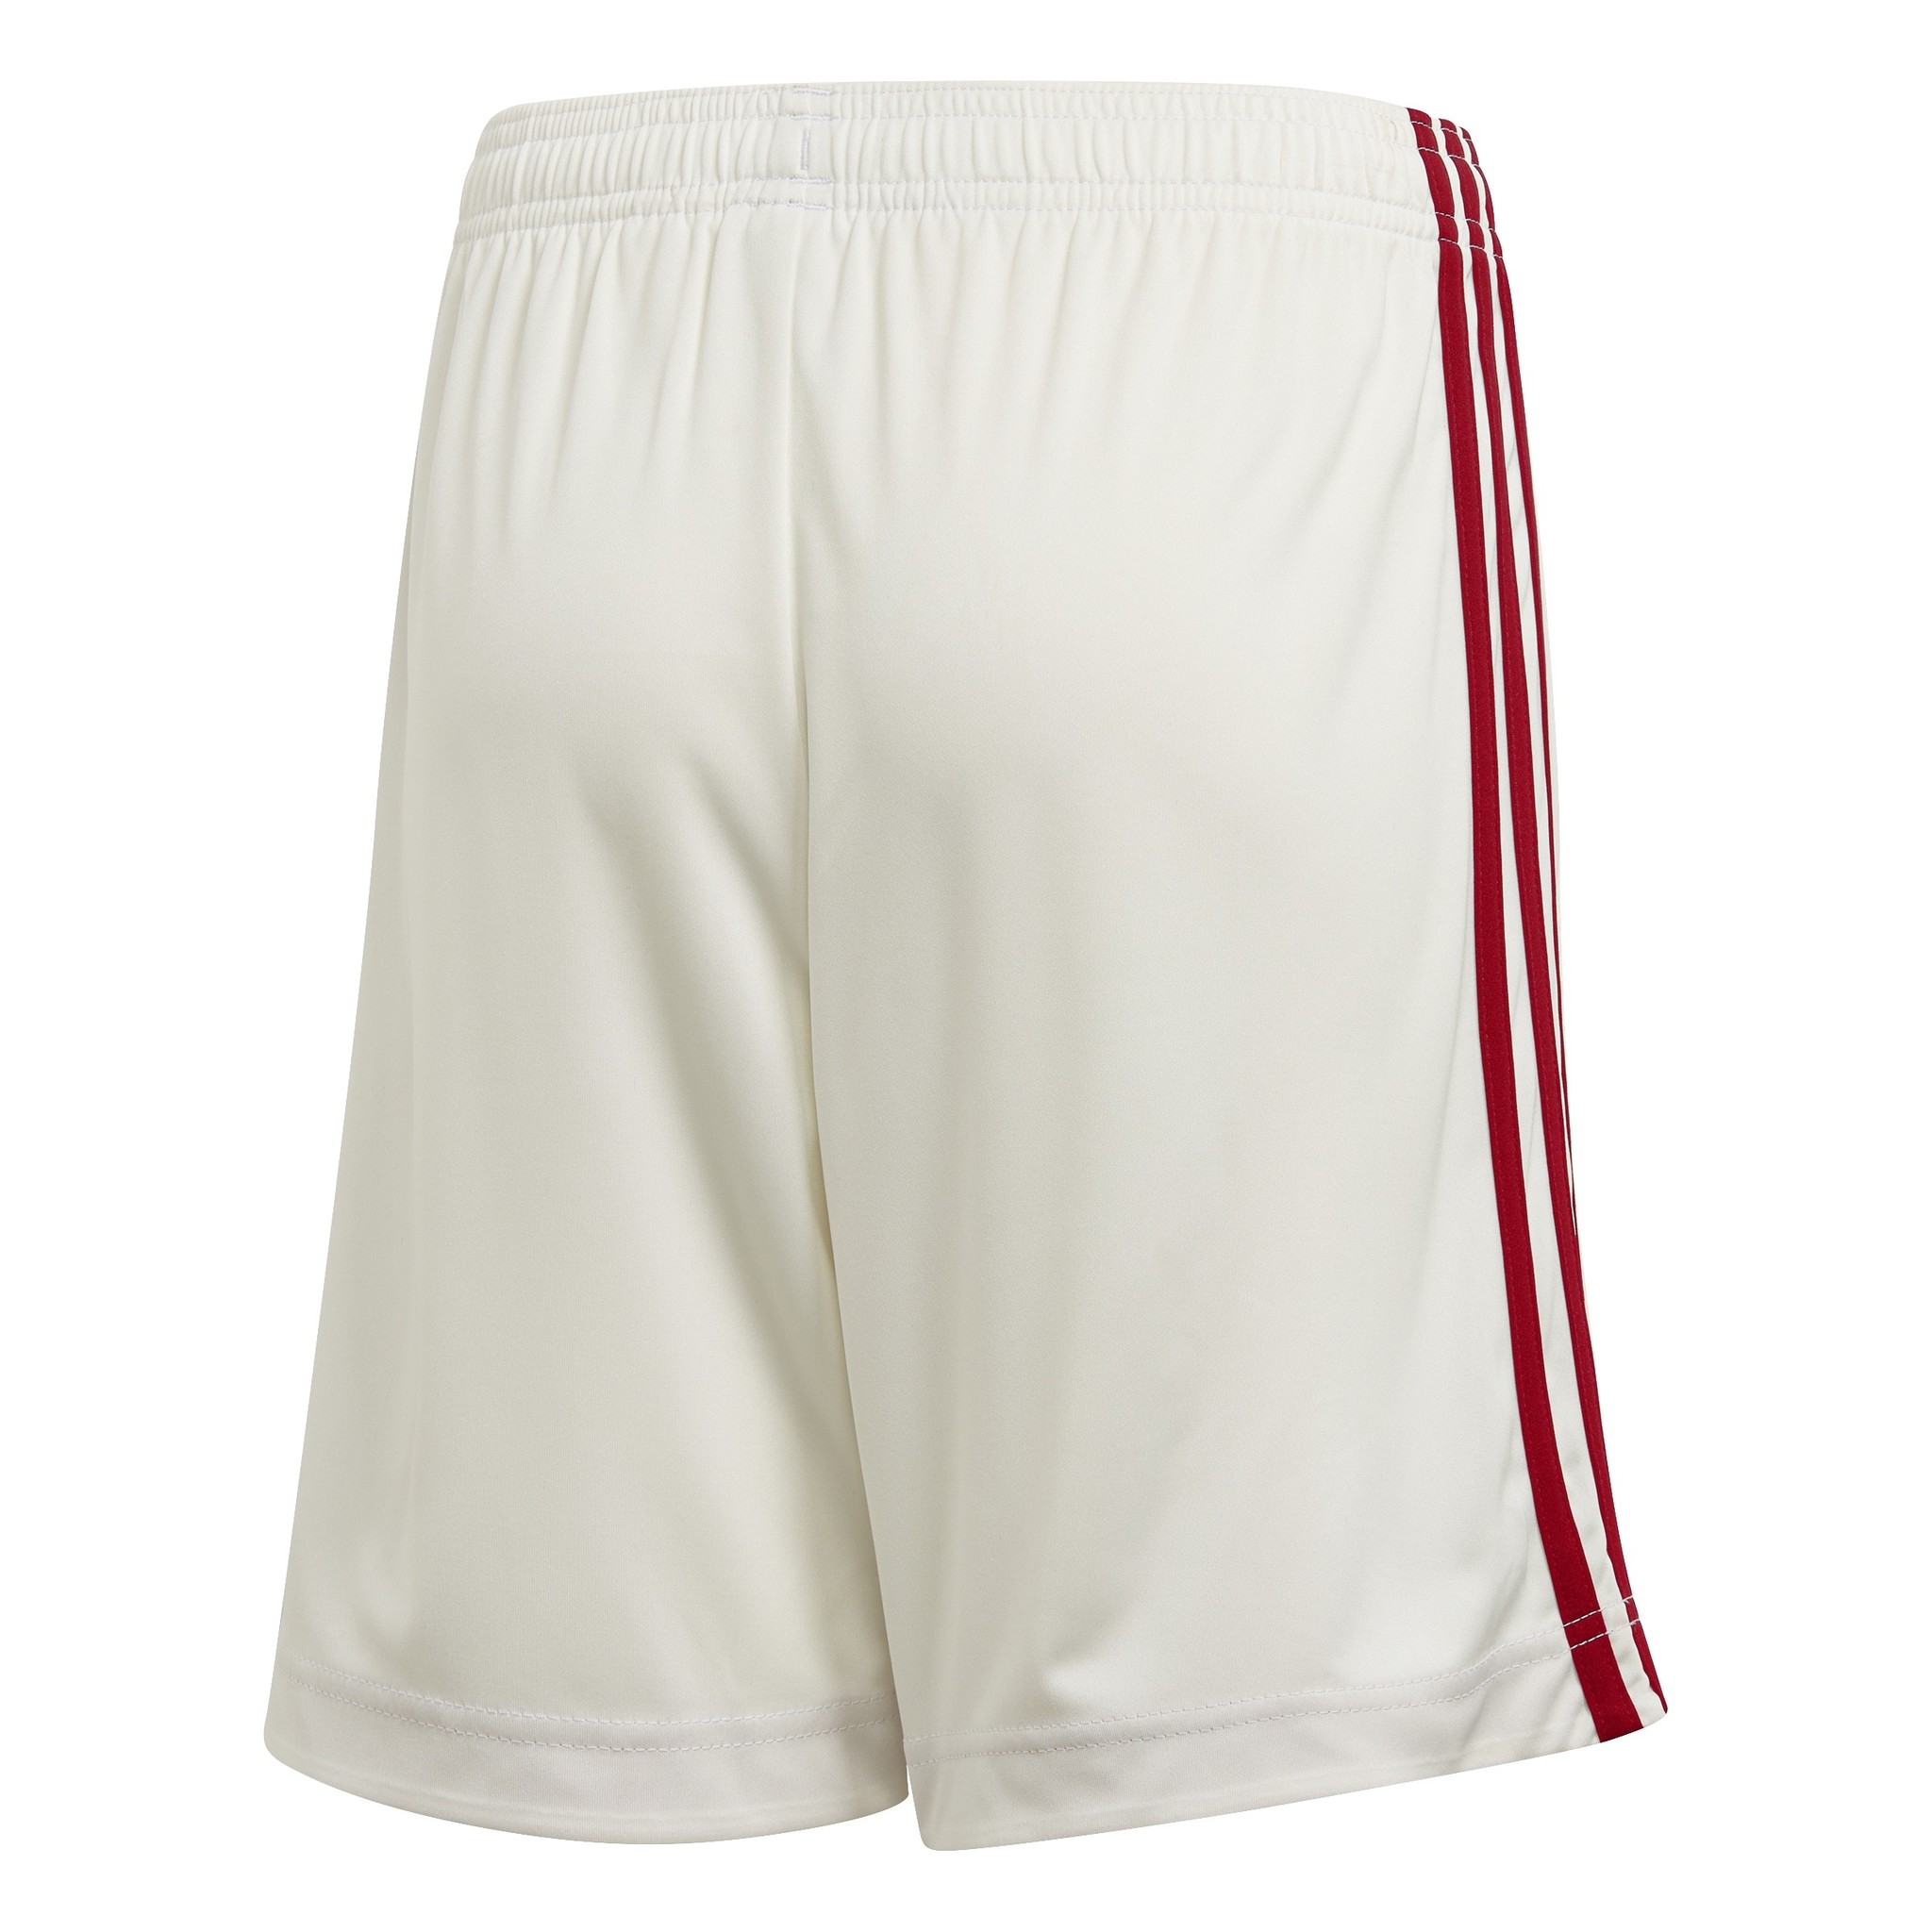 Adidas ADIDAS RBFA Away Short EK 2021